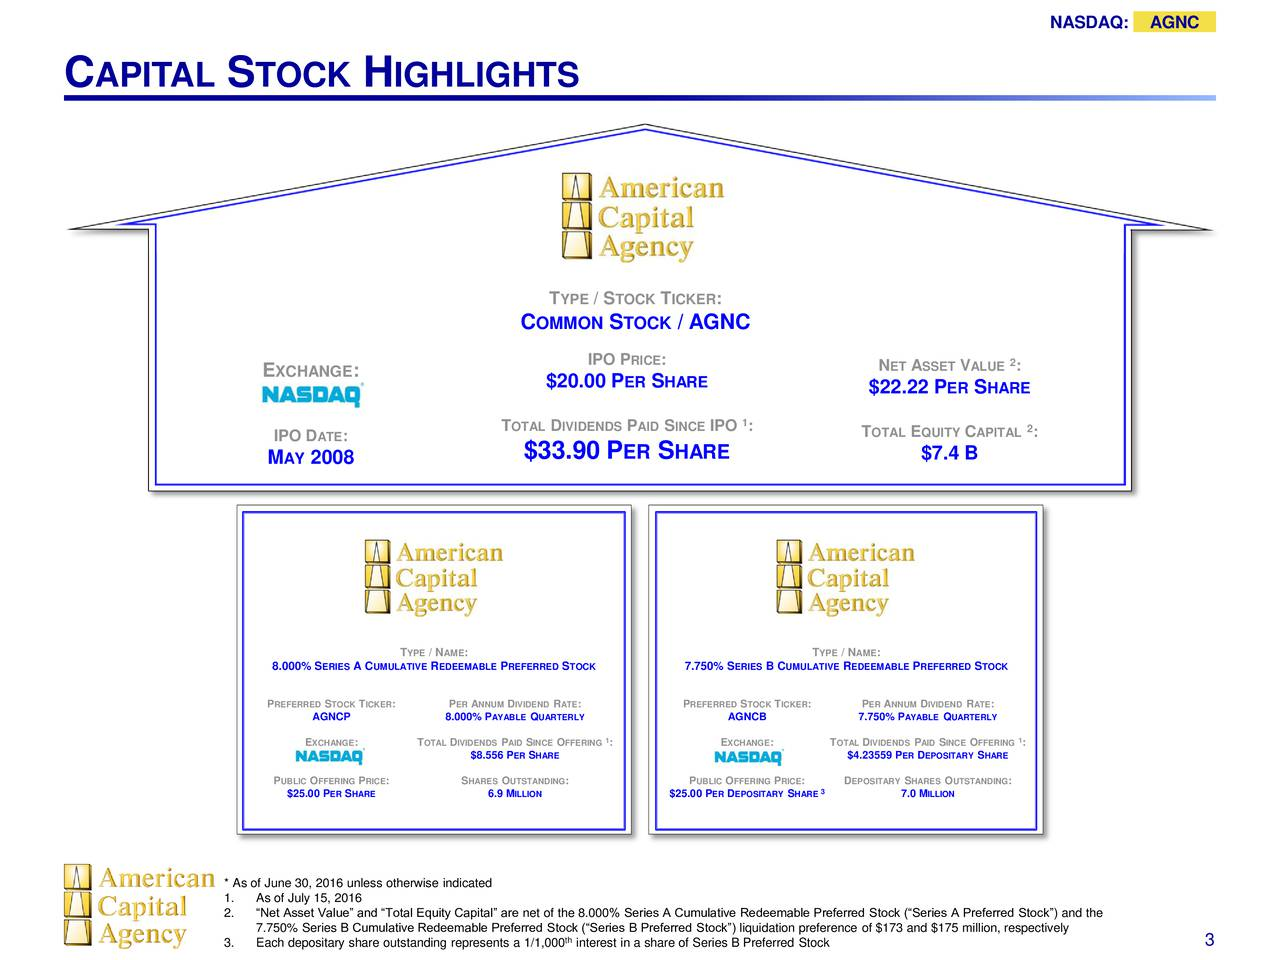 C APITAL S TOCK H IGHLIGHTS T YPE / STOCK TICKER : C OMMON STOCK / AGNC IPO PRICE : 2 E XCHANGE : N ET ASSET V ALUE : $20.00 P ER S HARE $22.22 P ER S HARE TOTAL D IVIDENDS PAID S INCEIPO :1 TOTAL EQUITY C APITAL : IPO D ATE: $33.90 P ER S HARE $7.4 B M AY 2008 TYPE/ AME: TYPE/ AME: 8.000% ERIESA UMULATIVREDEEMABLEPREFERRESTOCK 7.750% ERIEB CUMULATIREEDEEMABLPREFERRES TOCK PREFERRESTOCTICKE: PERANNUMDIVIDERAT: PREFERRSTOCKTICKE: PERANNUMDIVIDERATE: AGNCP 8.000%AYABLEQUARTERLY AGNCB 7.750%AYABLQUARTERLY EXCHANG: TOTALDIVIDENPAISINCO FFERIN: EXCHANG: TOTADIVIDENPAIDSINCOFFERIN: $8.55ERPHARE $4.23559ERDEPOSITASHARE PUBLIOFFERIPRIC: SHARESOUTSTANDI:G PUBLIO FFERIPRIC: DEPOSITASHAREO UTSTAND:NG $25.00ERSHARE 6.9 ILLION $25.00ERDEPOSITASHARE 7.0 ILLION * As of June 30, 2016 unless otherwise indicated 1. As of July 15, 2016 2. Net Asset Value and Total Equity Capital are net of the 8.000% Series A Cumulative Redeemable Preferred Stock (Series A Preferred Stock) and the 7.750% Series B Cumulative Redeemable Preferred Stock (Series B Preferred Stock) liquidation preference of $173 and $175 million, respectively 3. Each depositary share outstanding representsinterest in a share of Series B Preferred Stock 3